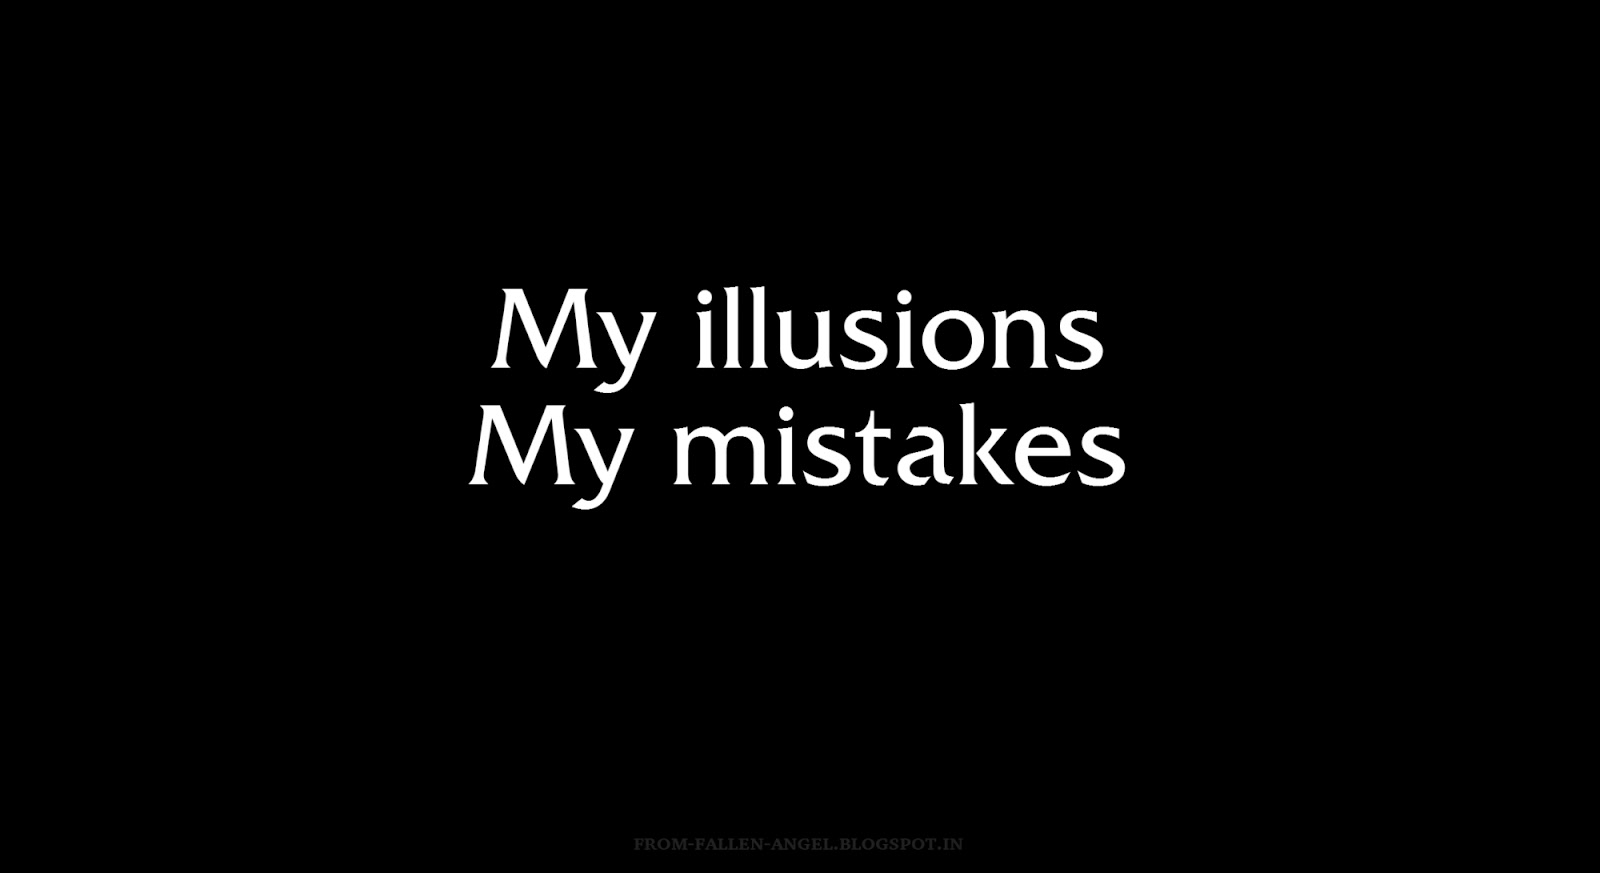 My illusions, My mistakes